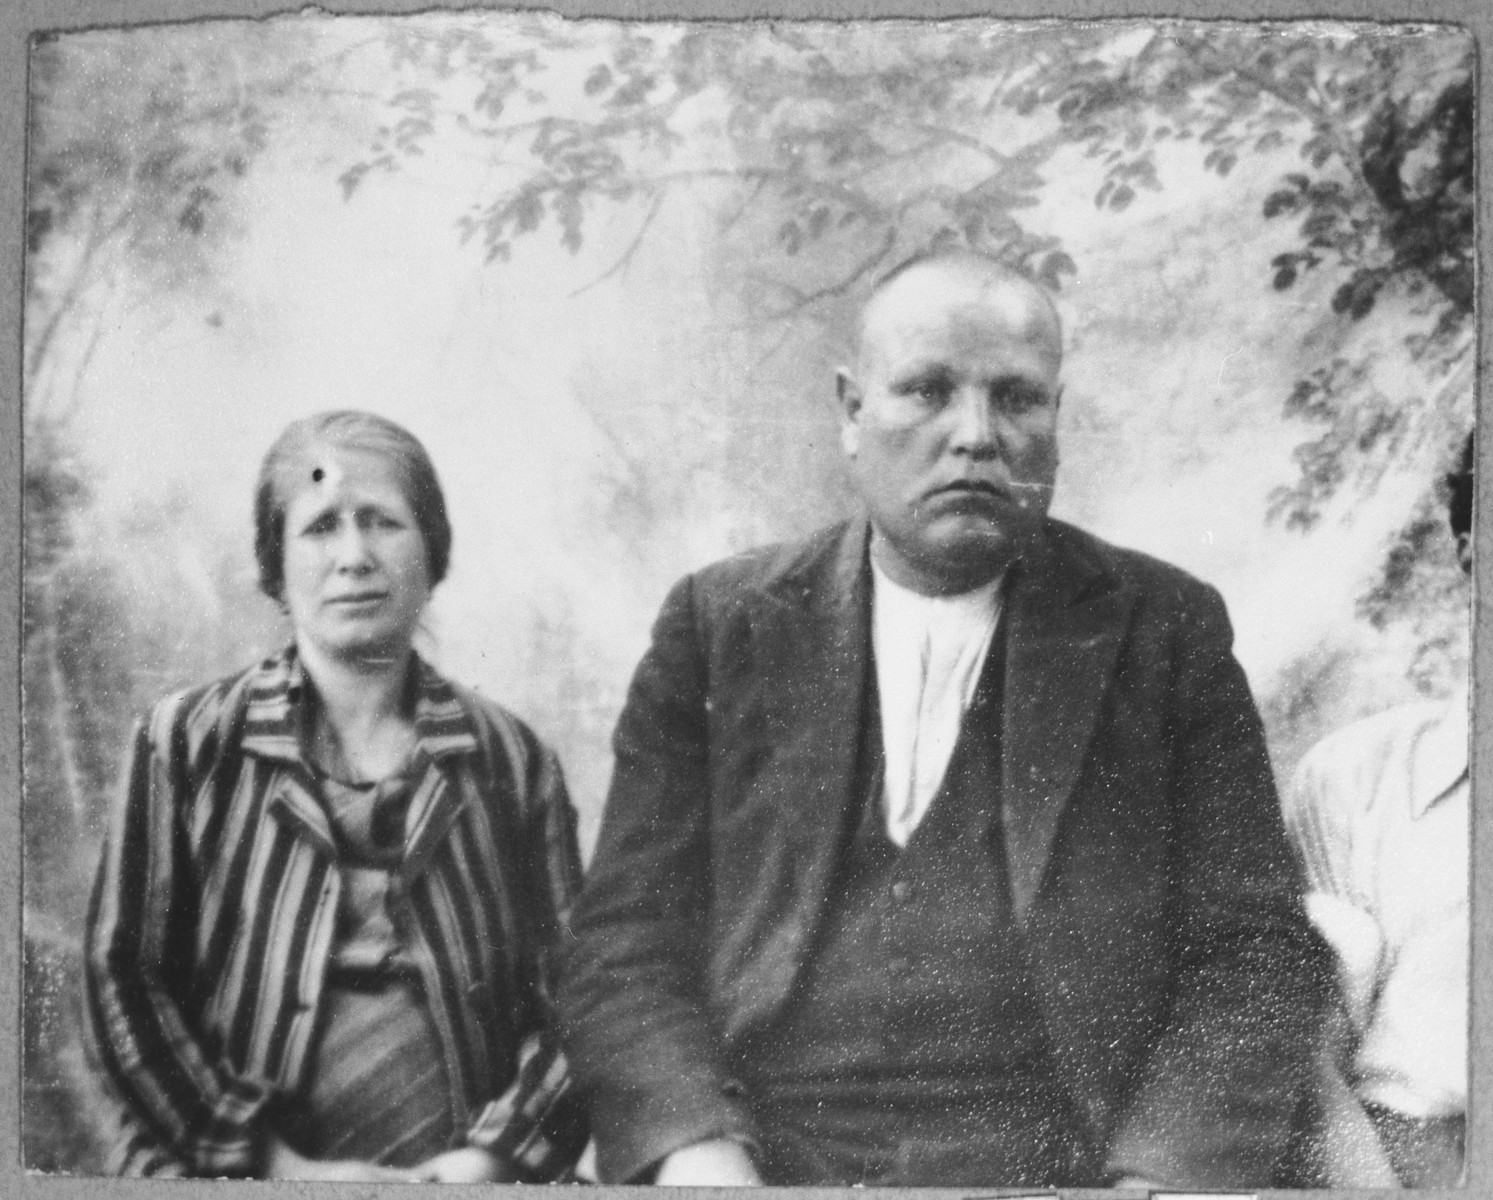 Portrait of Todoros Levi, son of Mair Levi, and Todoros' wife, Rekula.  Todoros was a rag dealer.  They lived at Zmayeva 5 in Bitola.